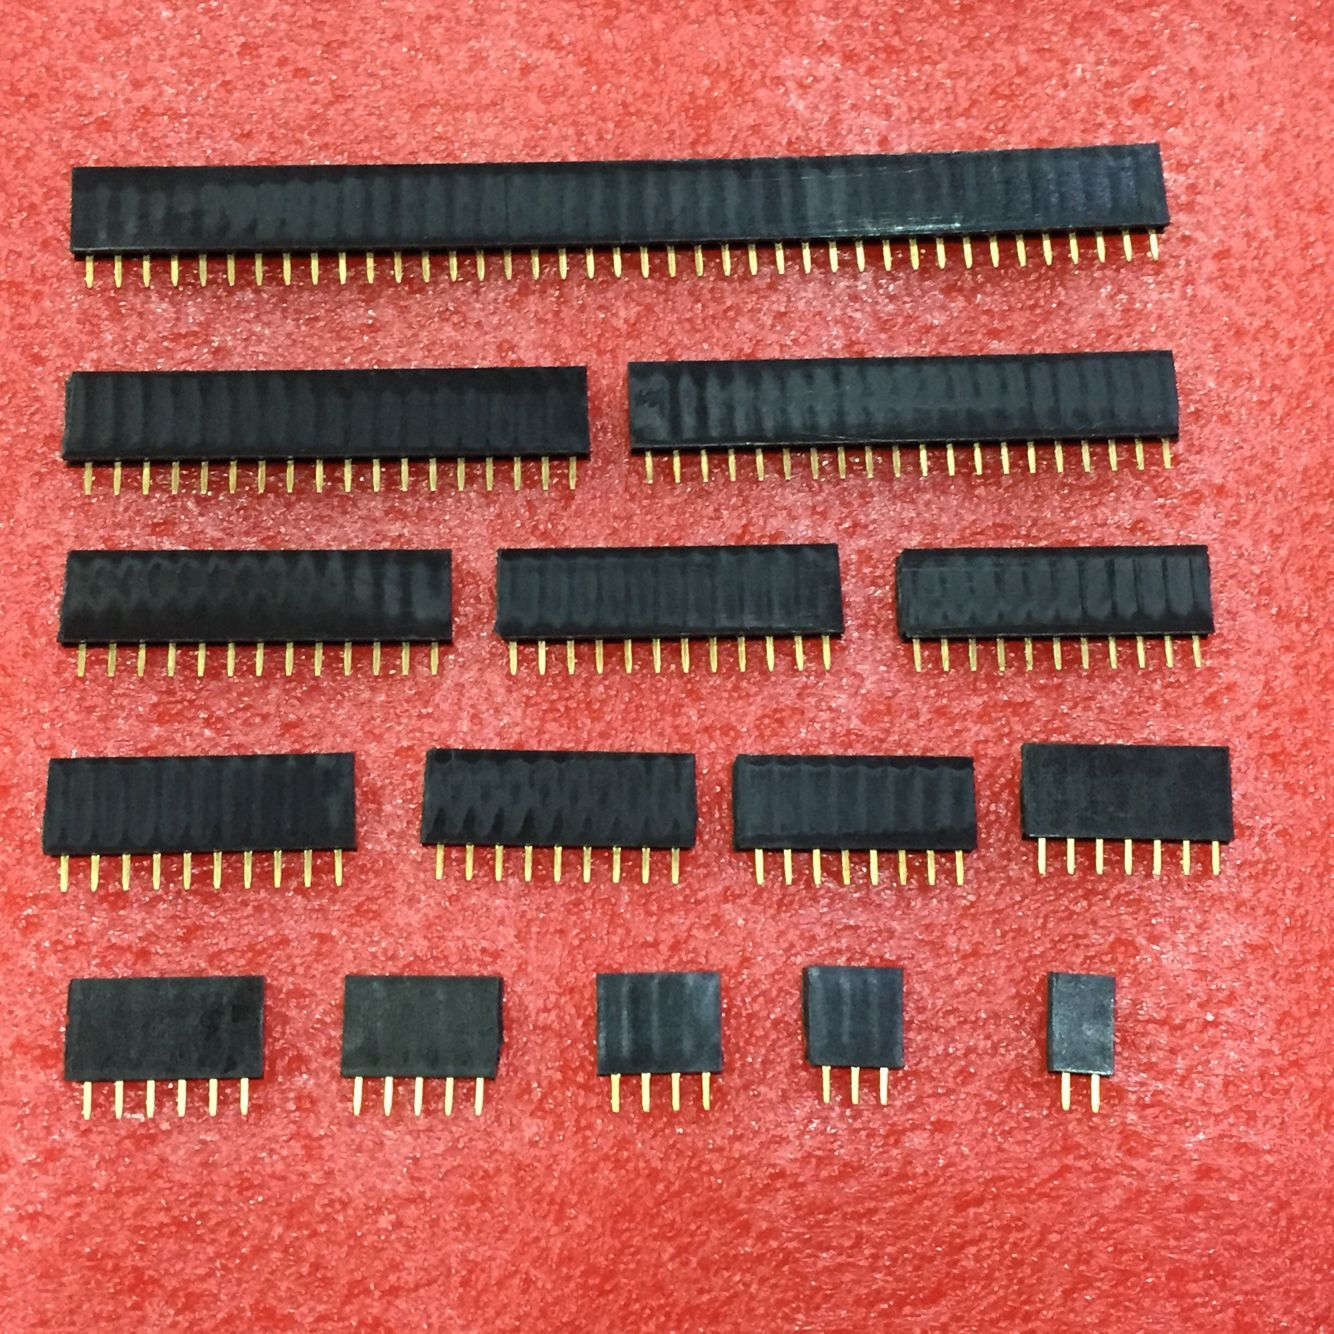 Single row female 2.54mm Pitch PCB Female Pin Header Connector Straight Single Row 2/3/4/5/6/7/8/9/10/11/12/13/14/15/16/20/40Pin image